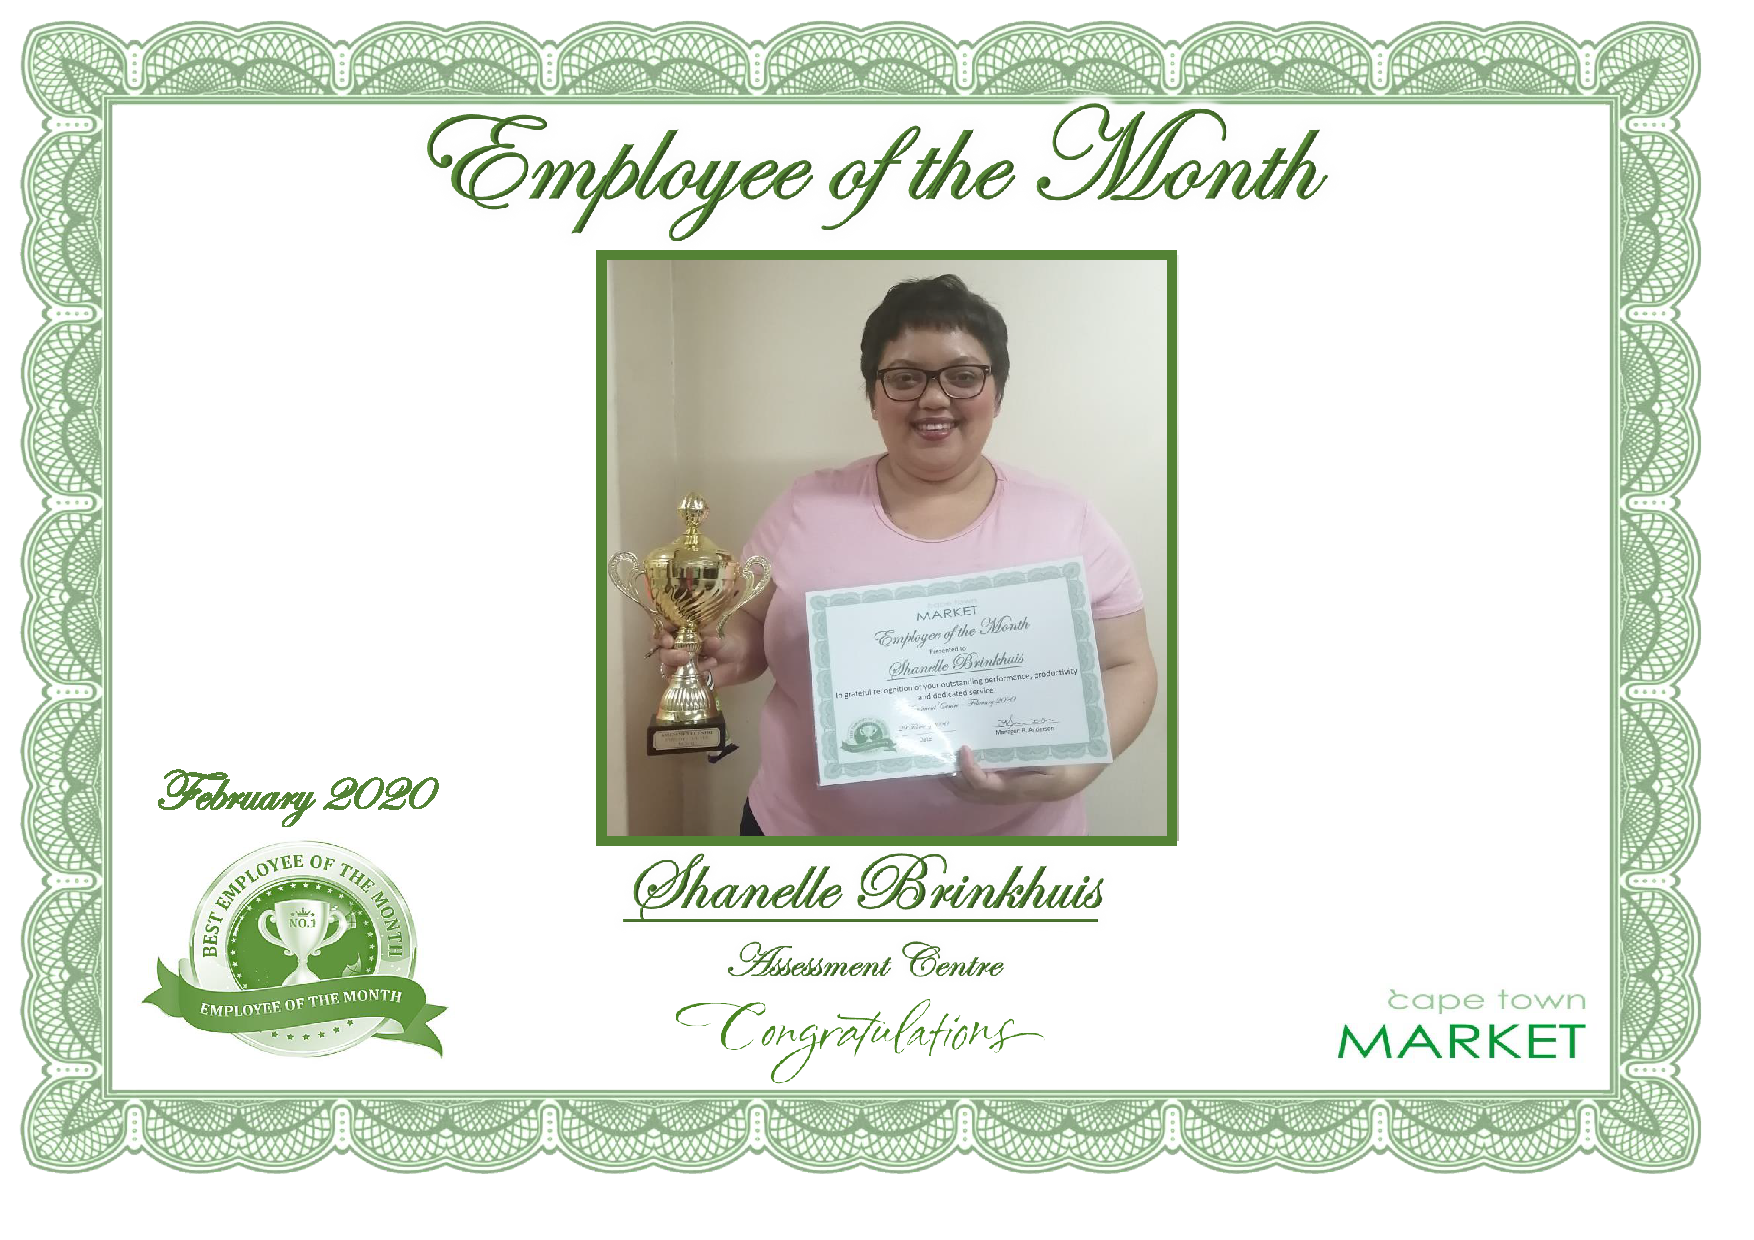 FEBRUARY 2020-EMPLOYEE OF THE MONTH